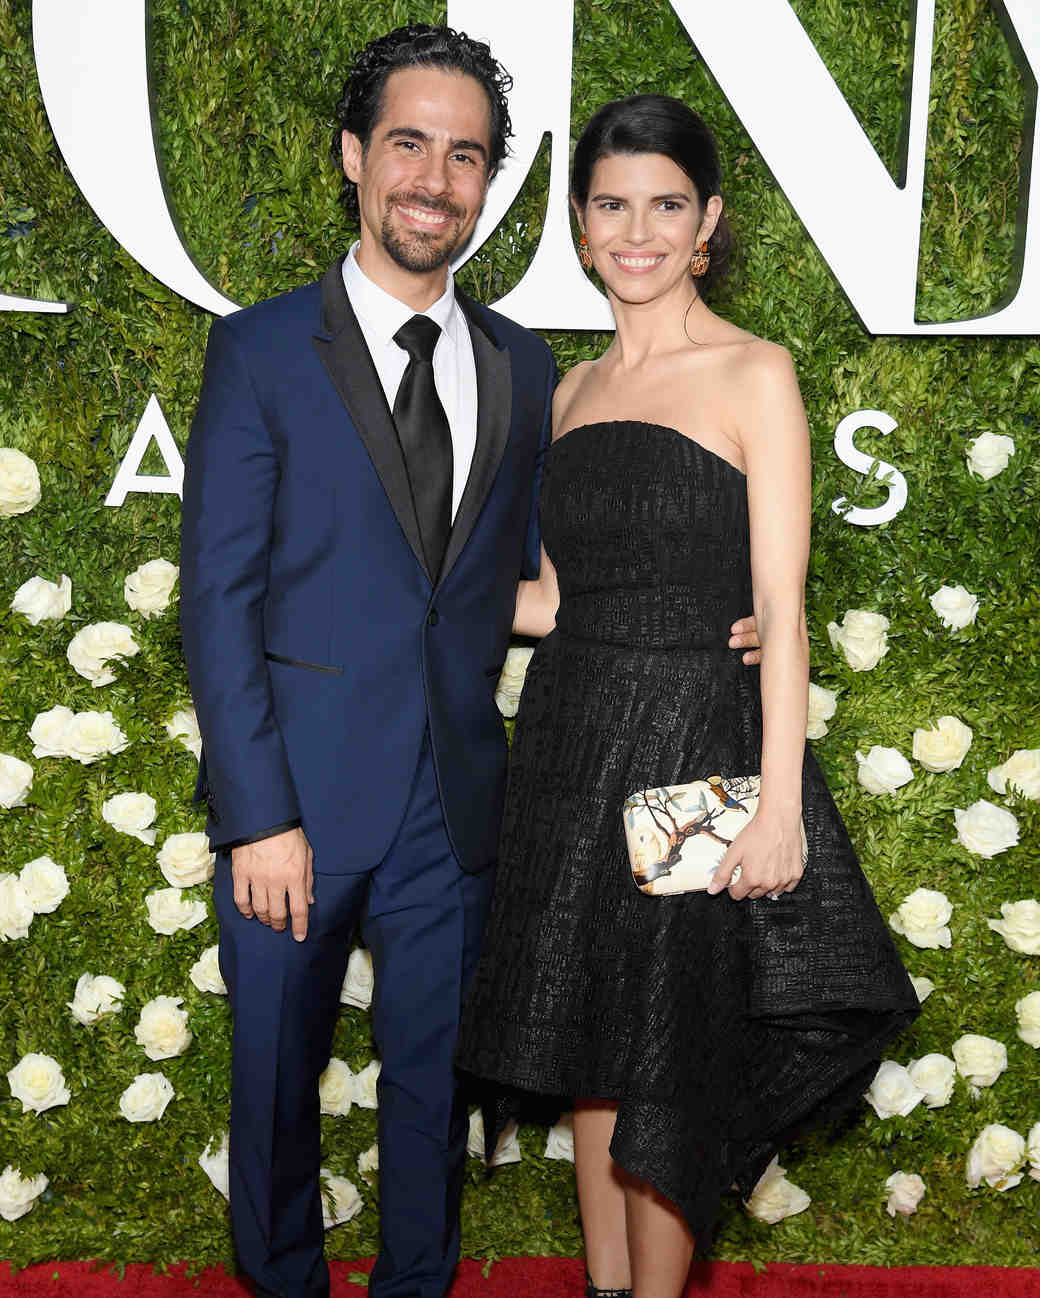 Alex Lacamoire and Ileana Ferreras at 2017 Tony Awards